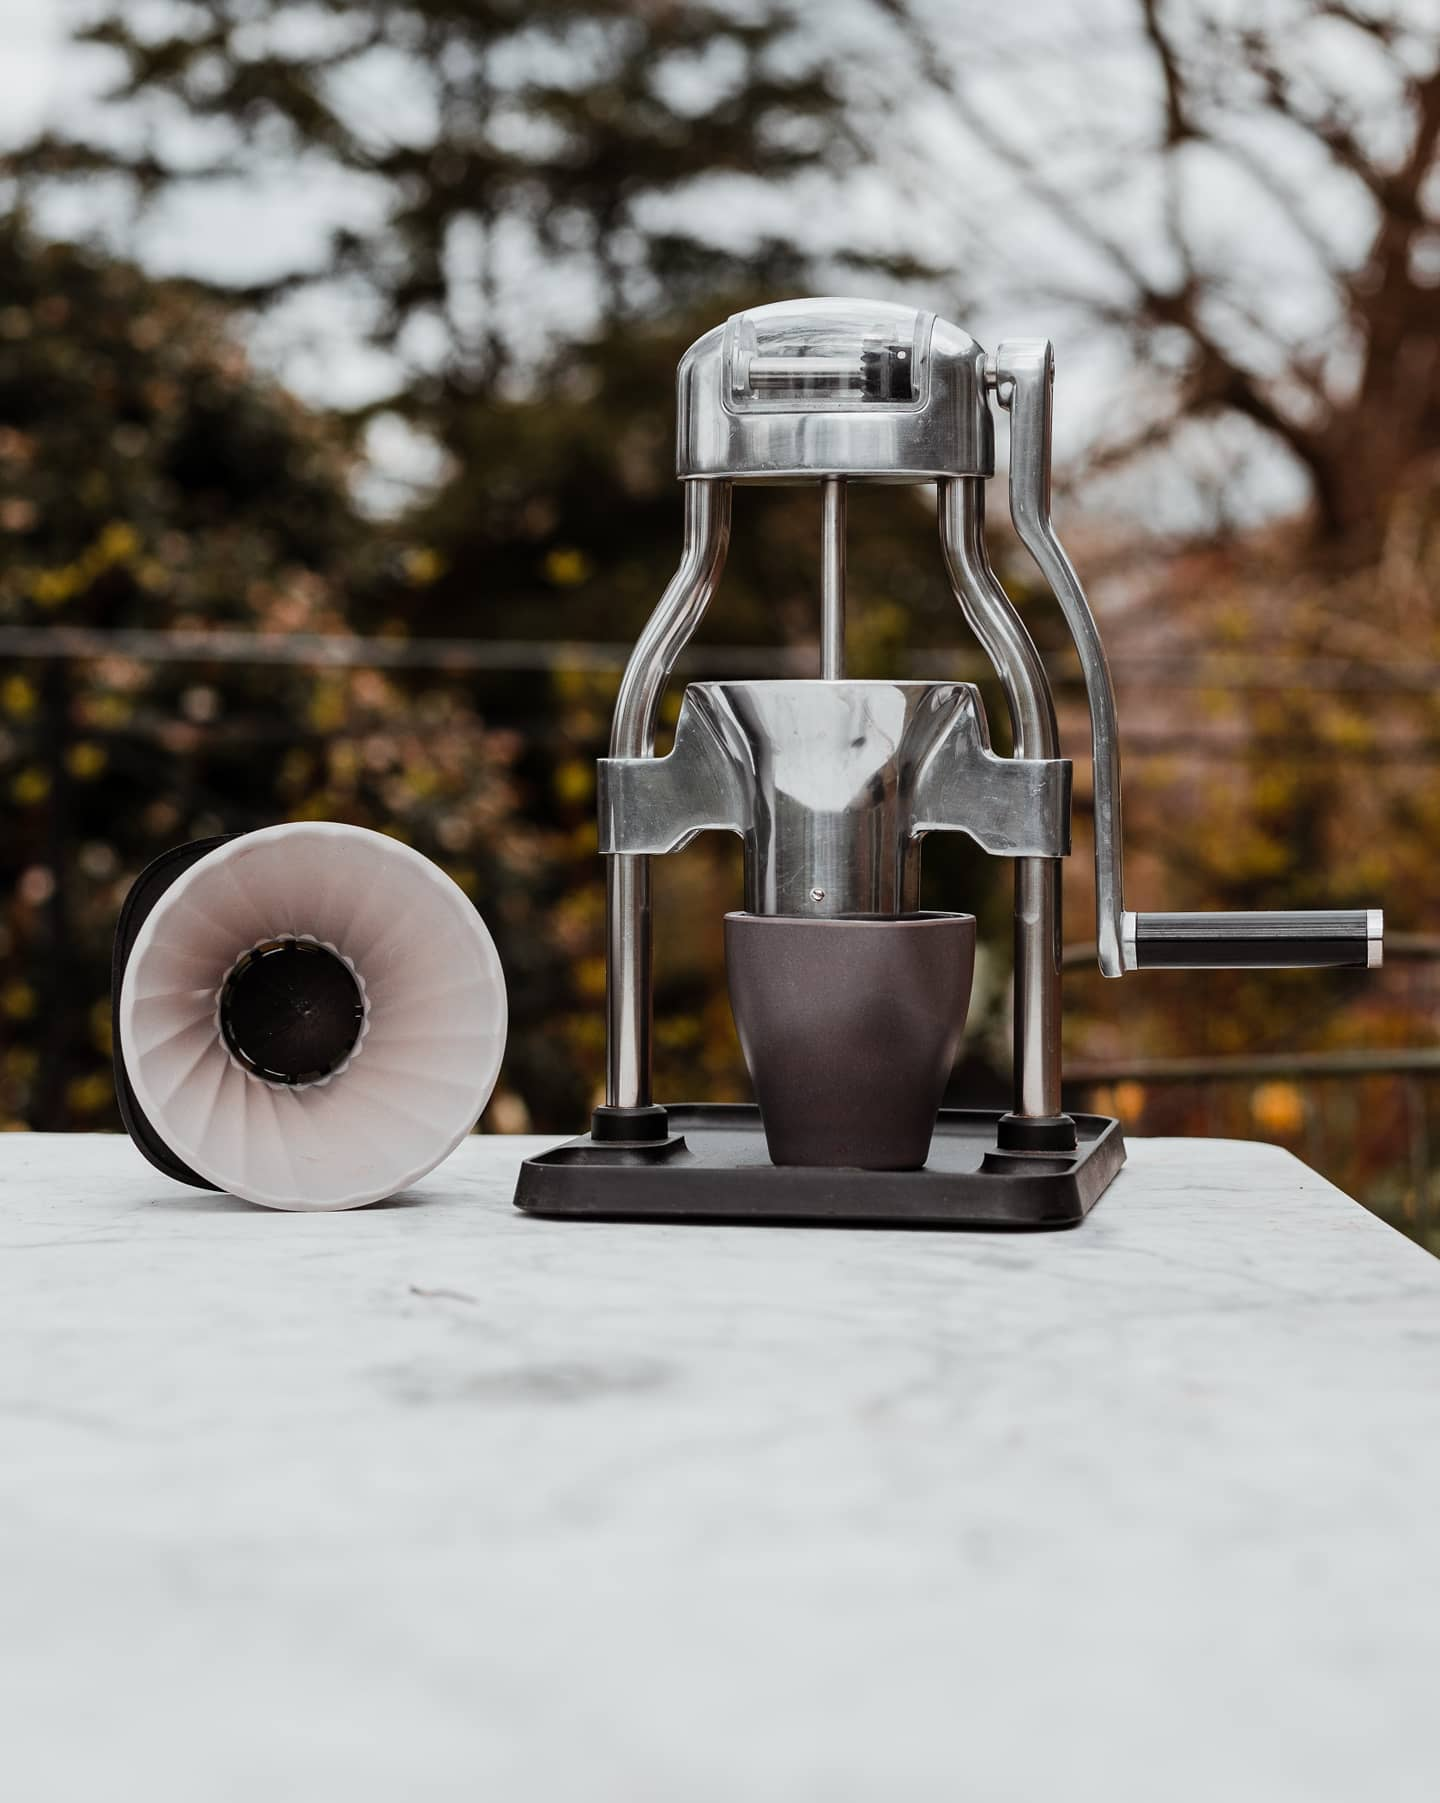 Find that perfect calibration between your Grinder and W1 Pour-Over to get the ideal tasting coffee.   Pick up a W1 with any grinder purchase for a discounted price on checkout!